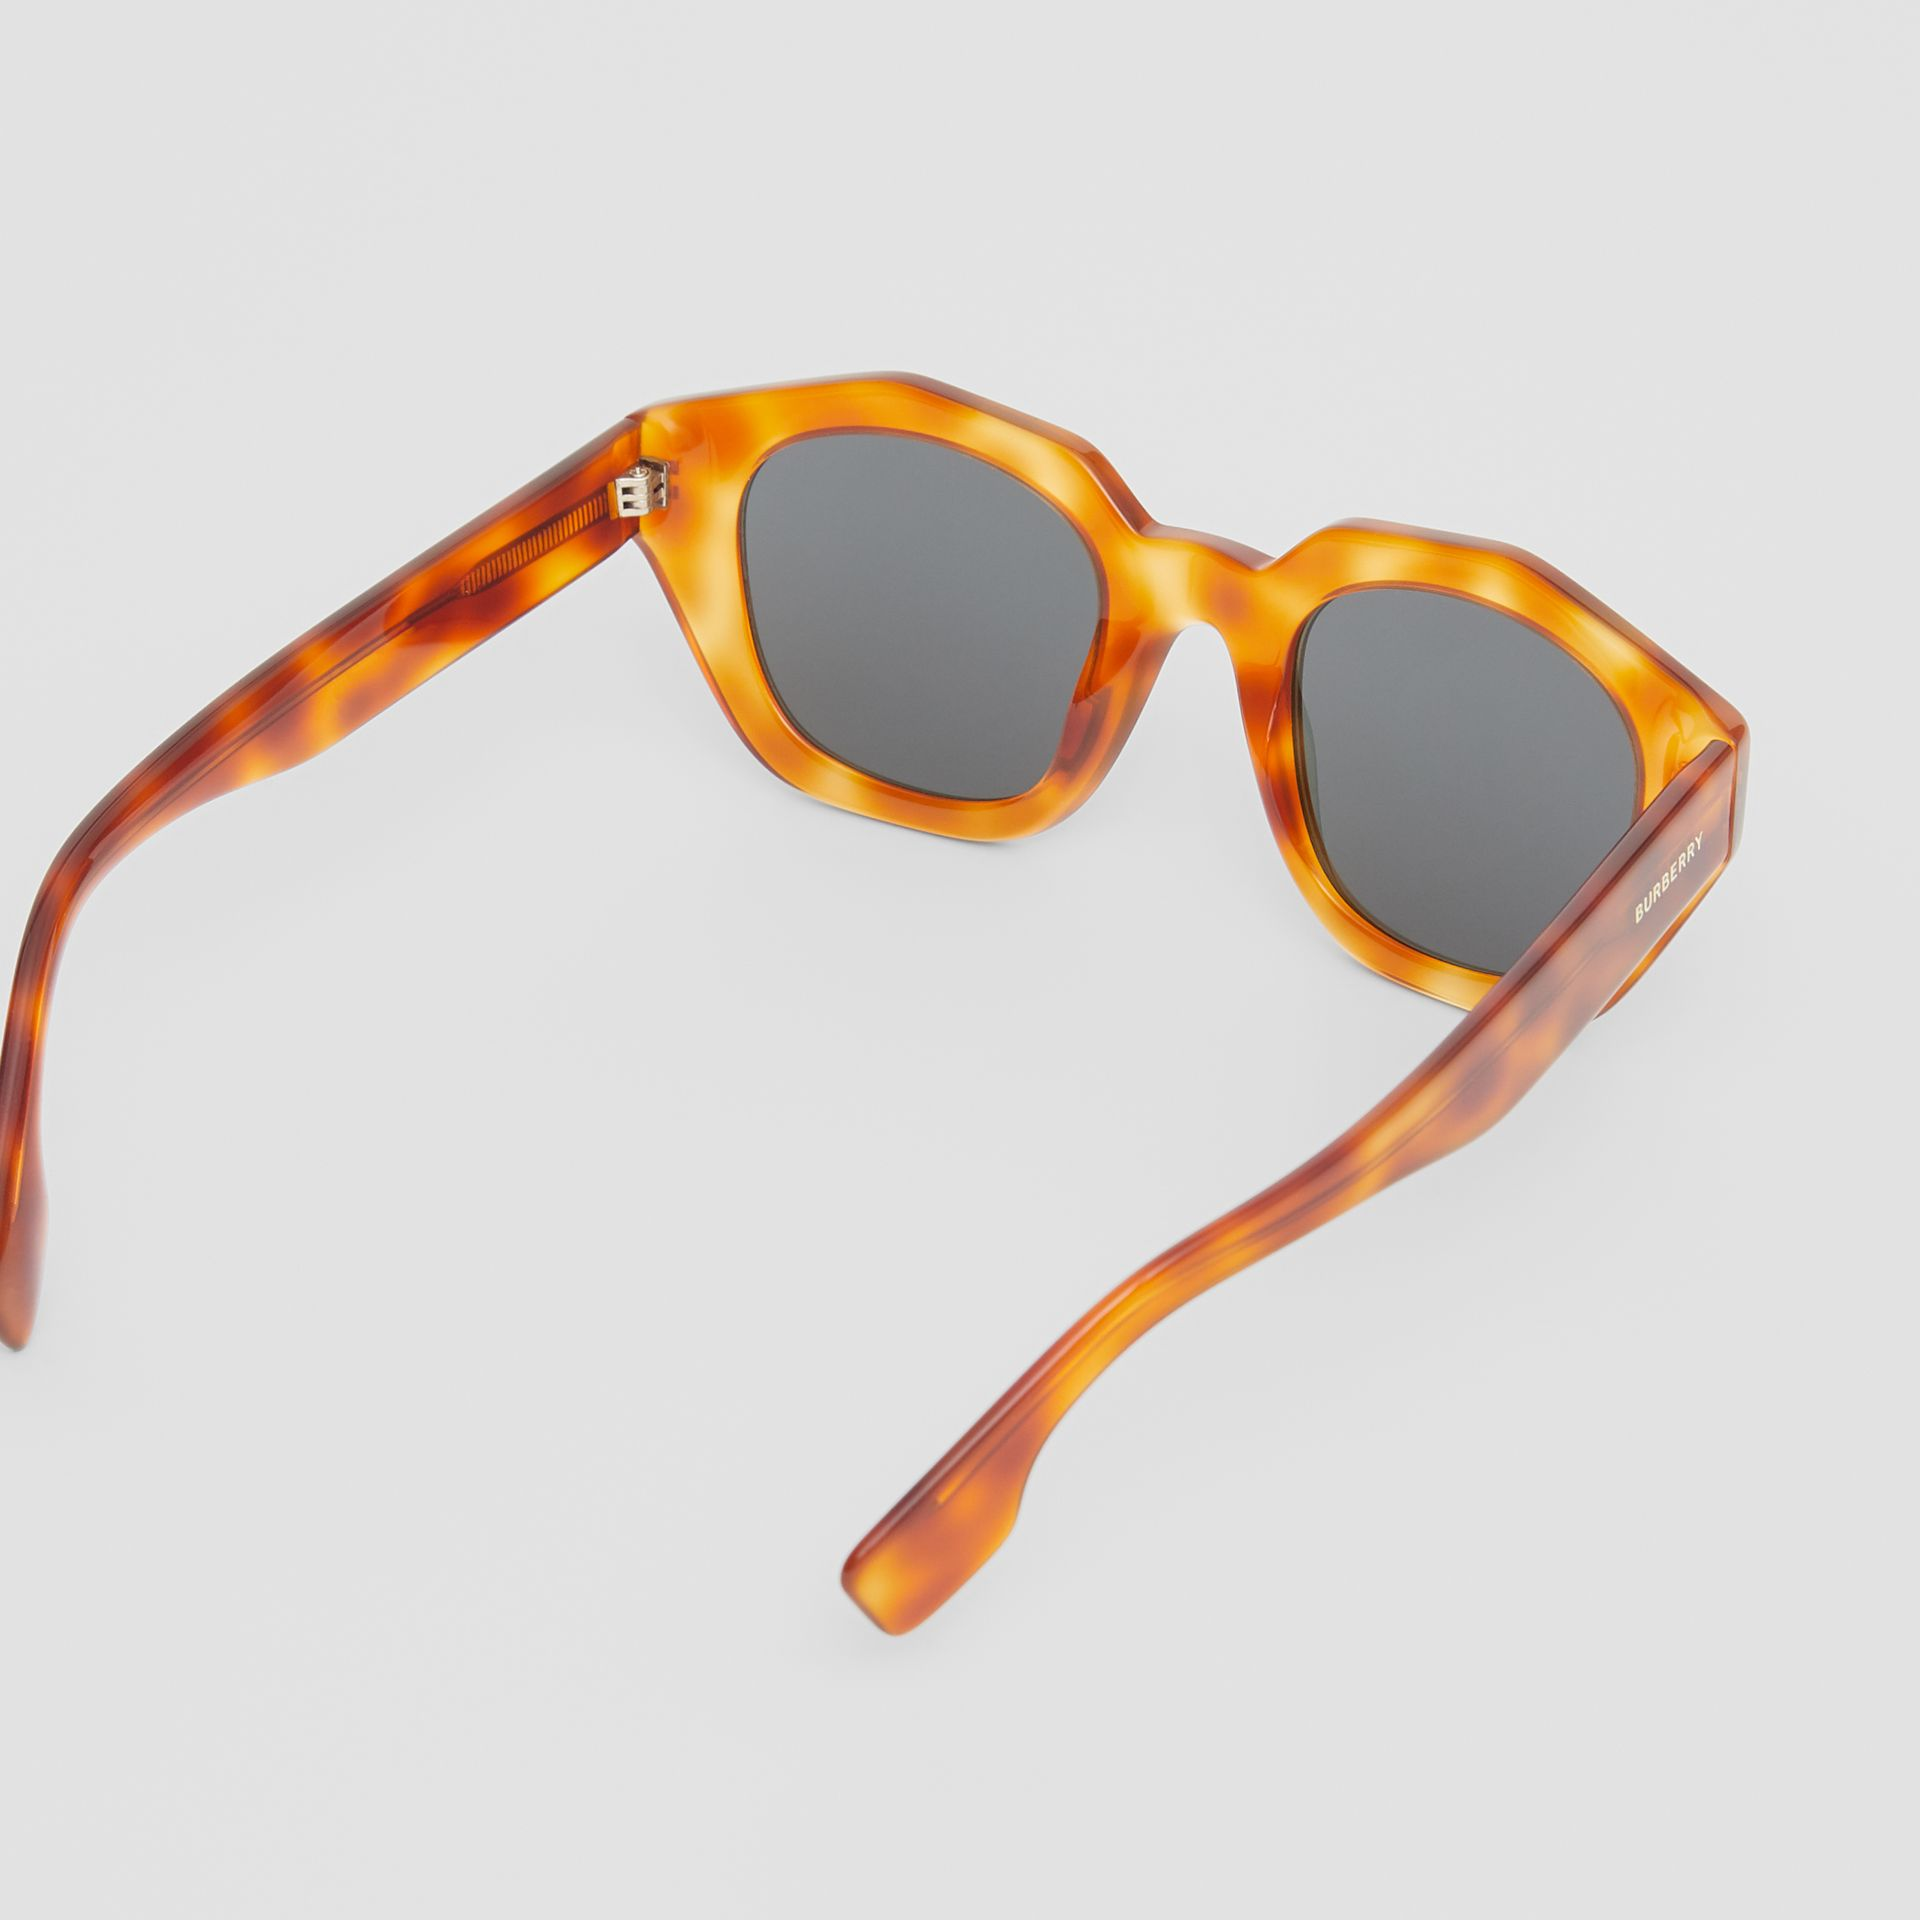 Geometric Frame Sunglasses in Tortoiseshell Amber - Women | Burberry - gallery image 4